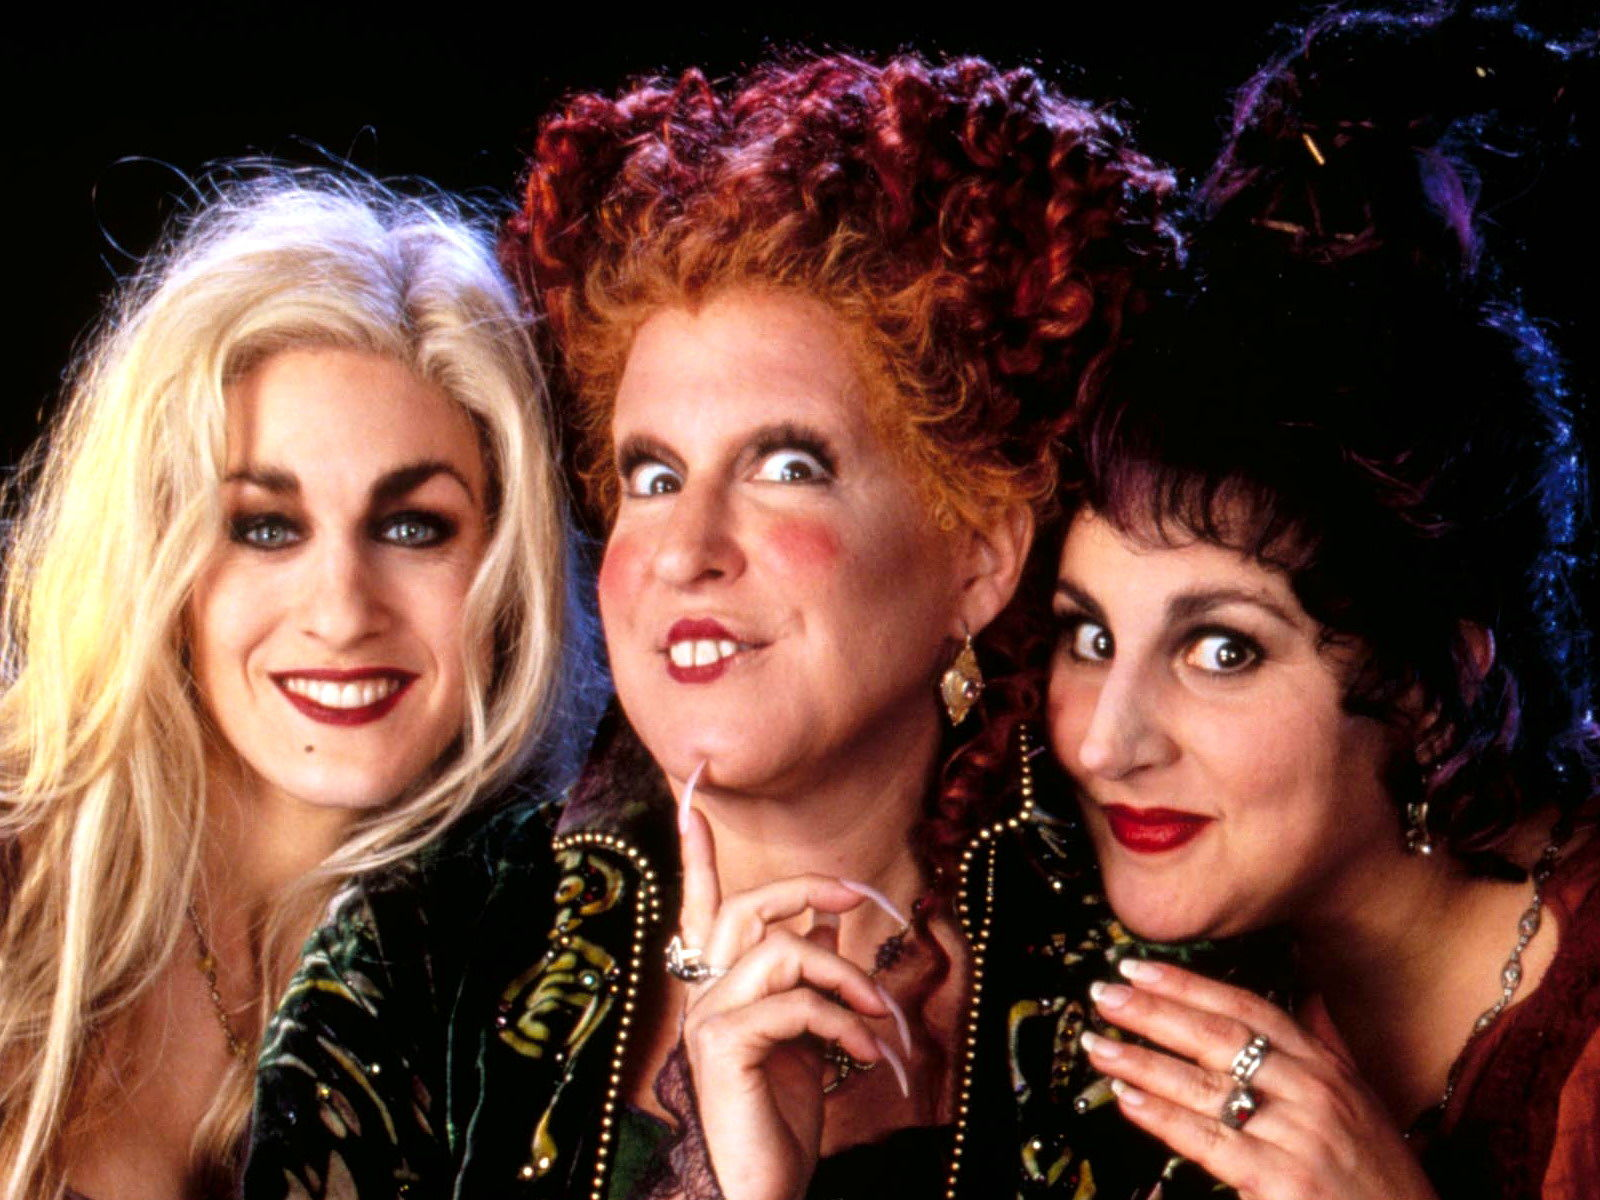 QUIZ: It's the ultimate Halloween film – but how well do you really know Hocus Pocus?